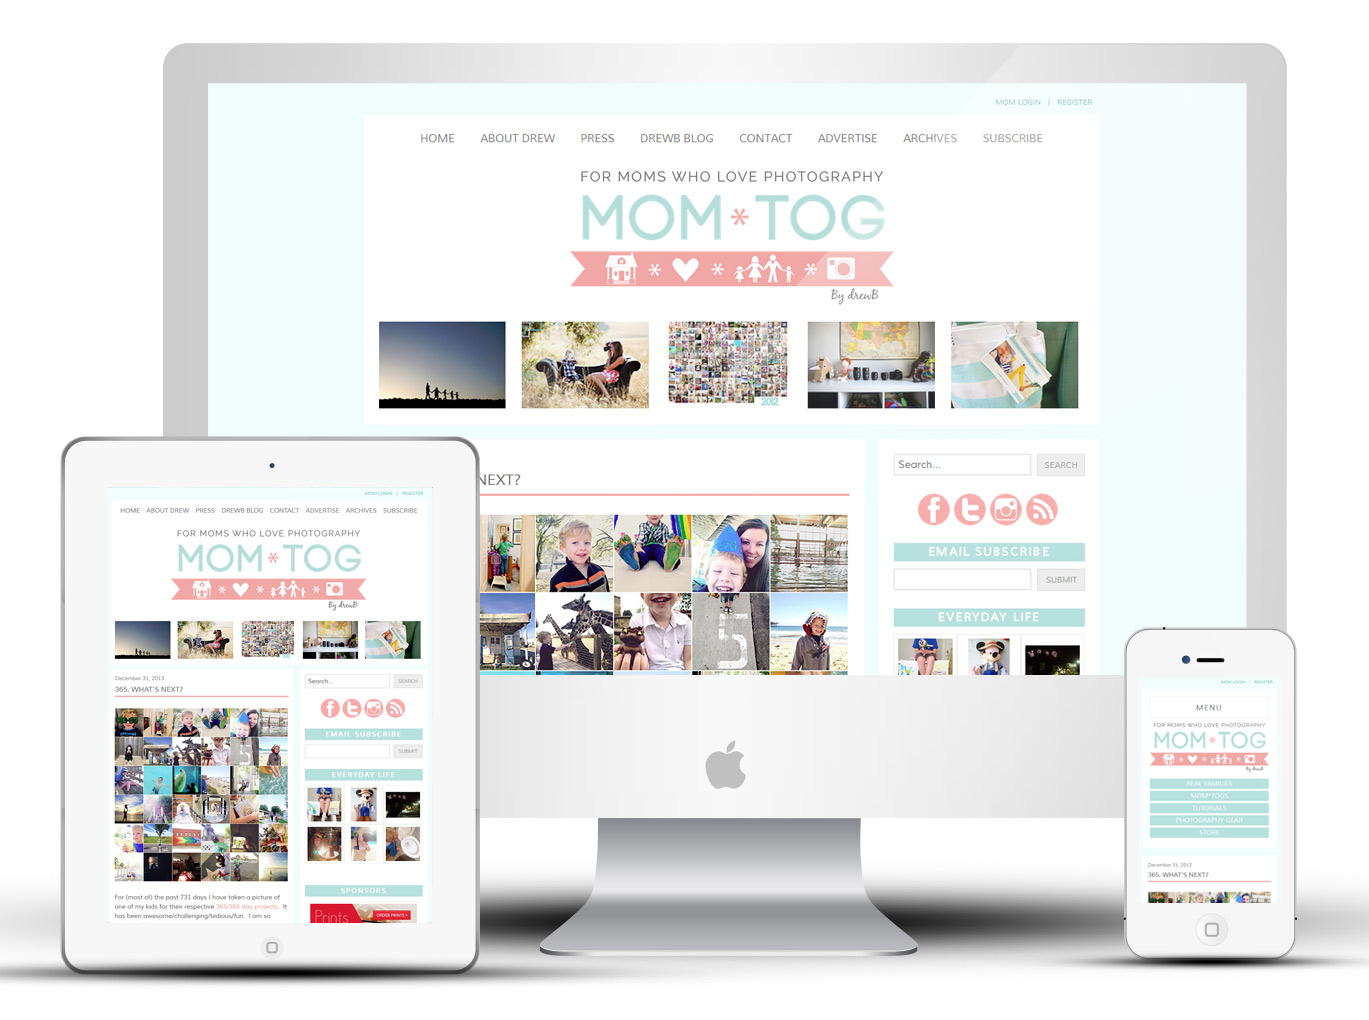 Custom Responsive WordPress Design: Mom*tog Photography Blog